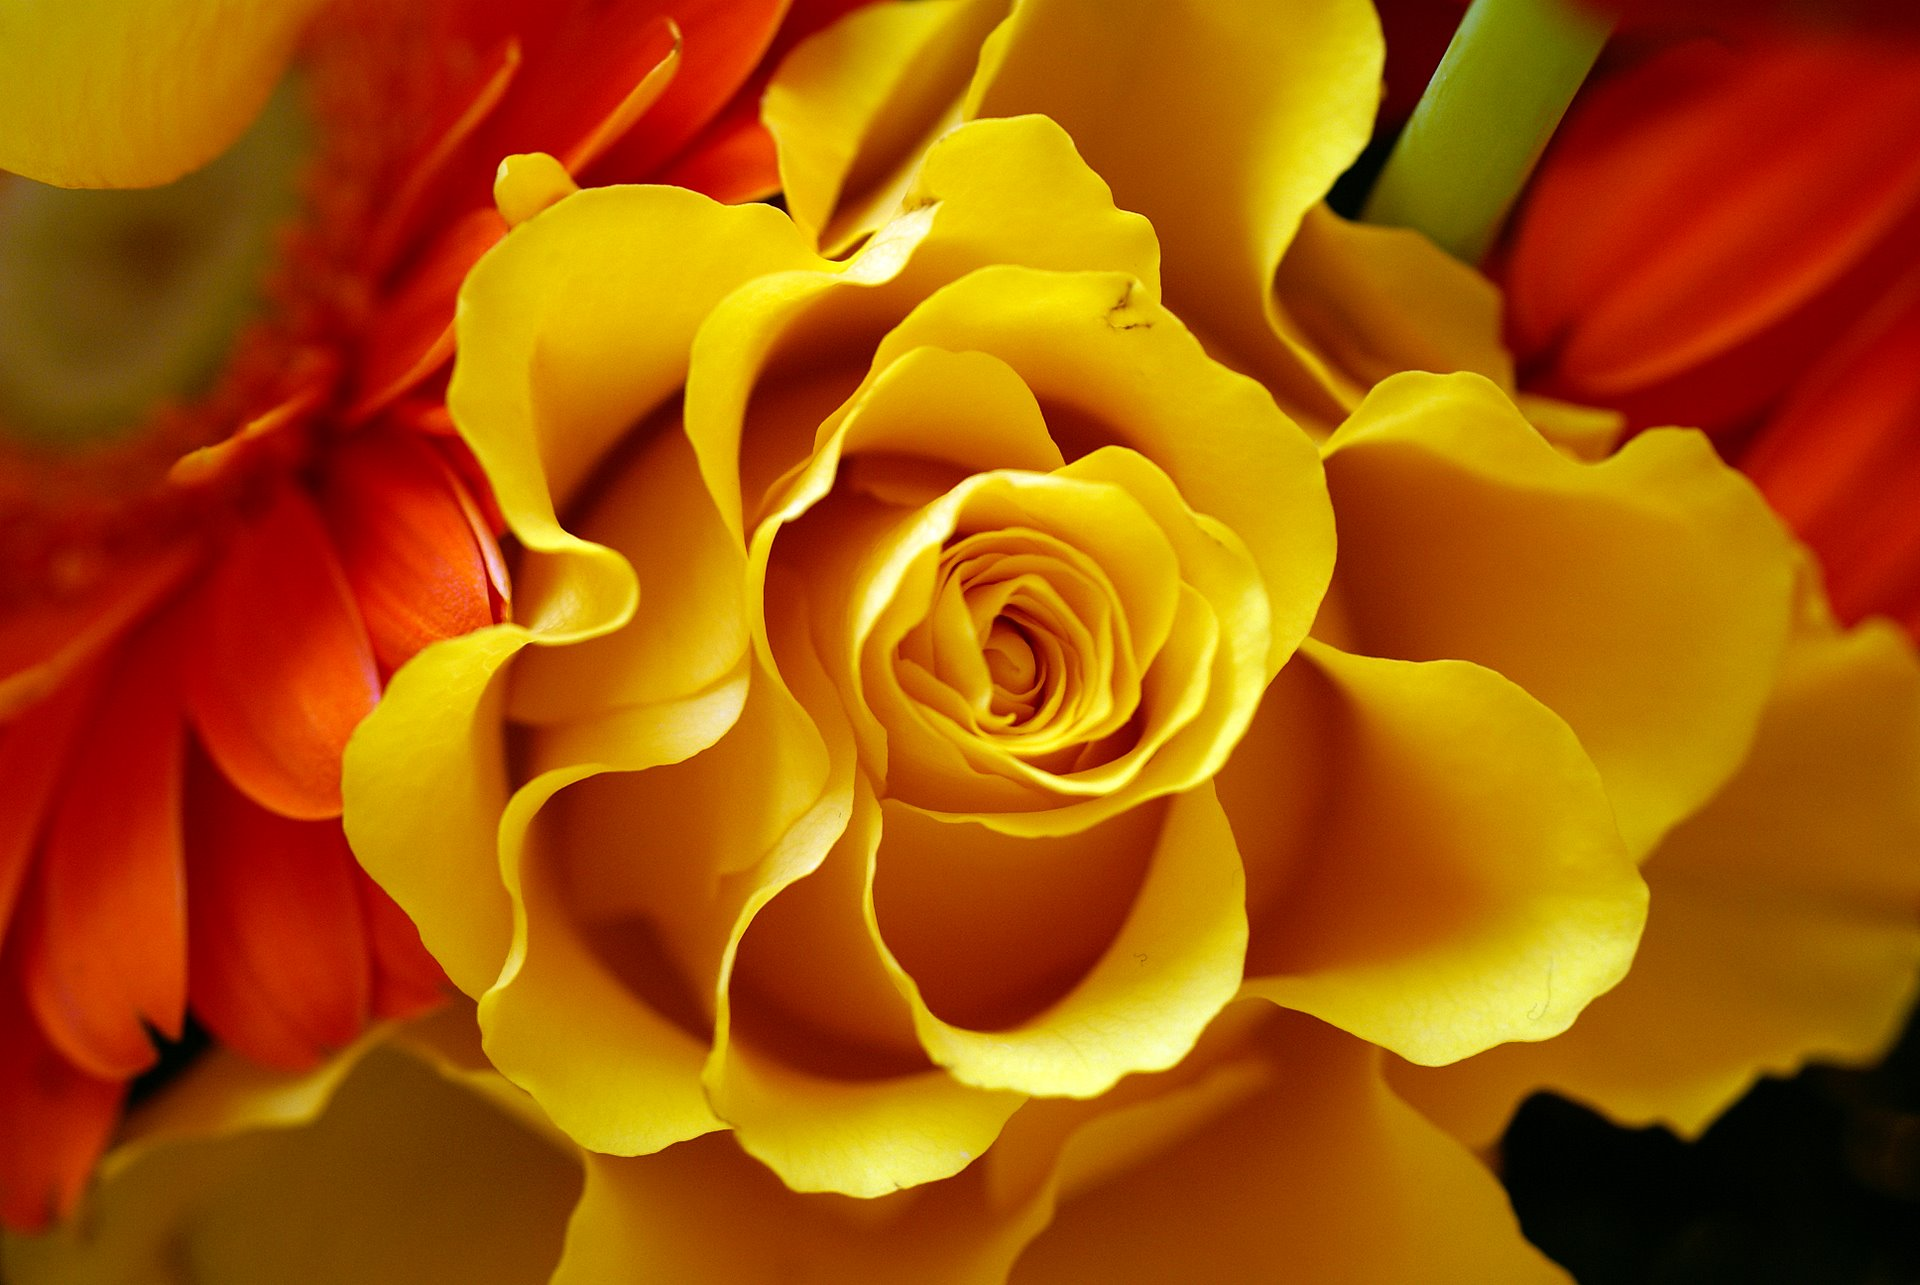 Flower bouquets flower composition photo and wallpapers whether amazing yellow rose izmirmasajfo